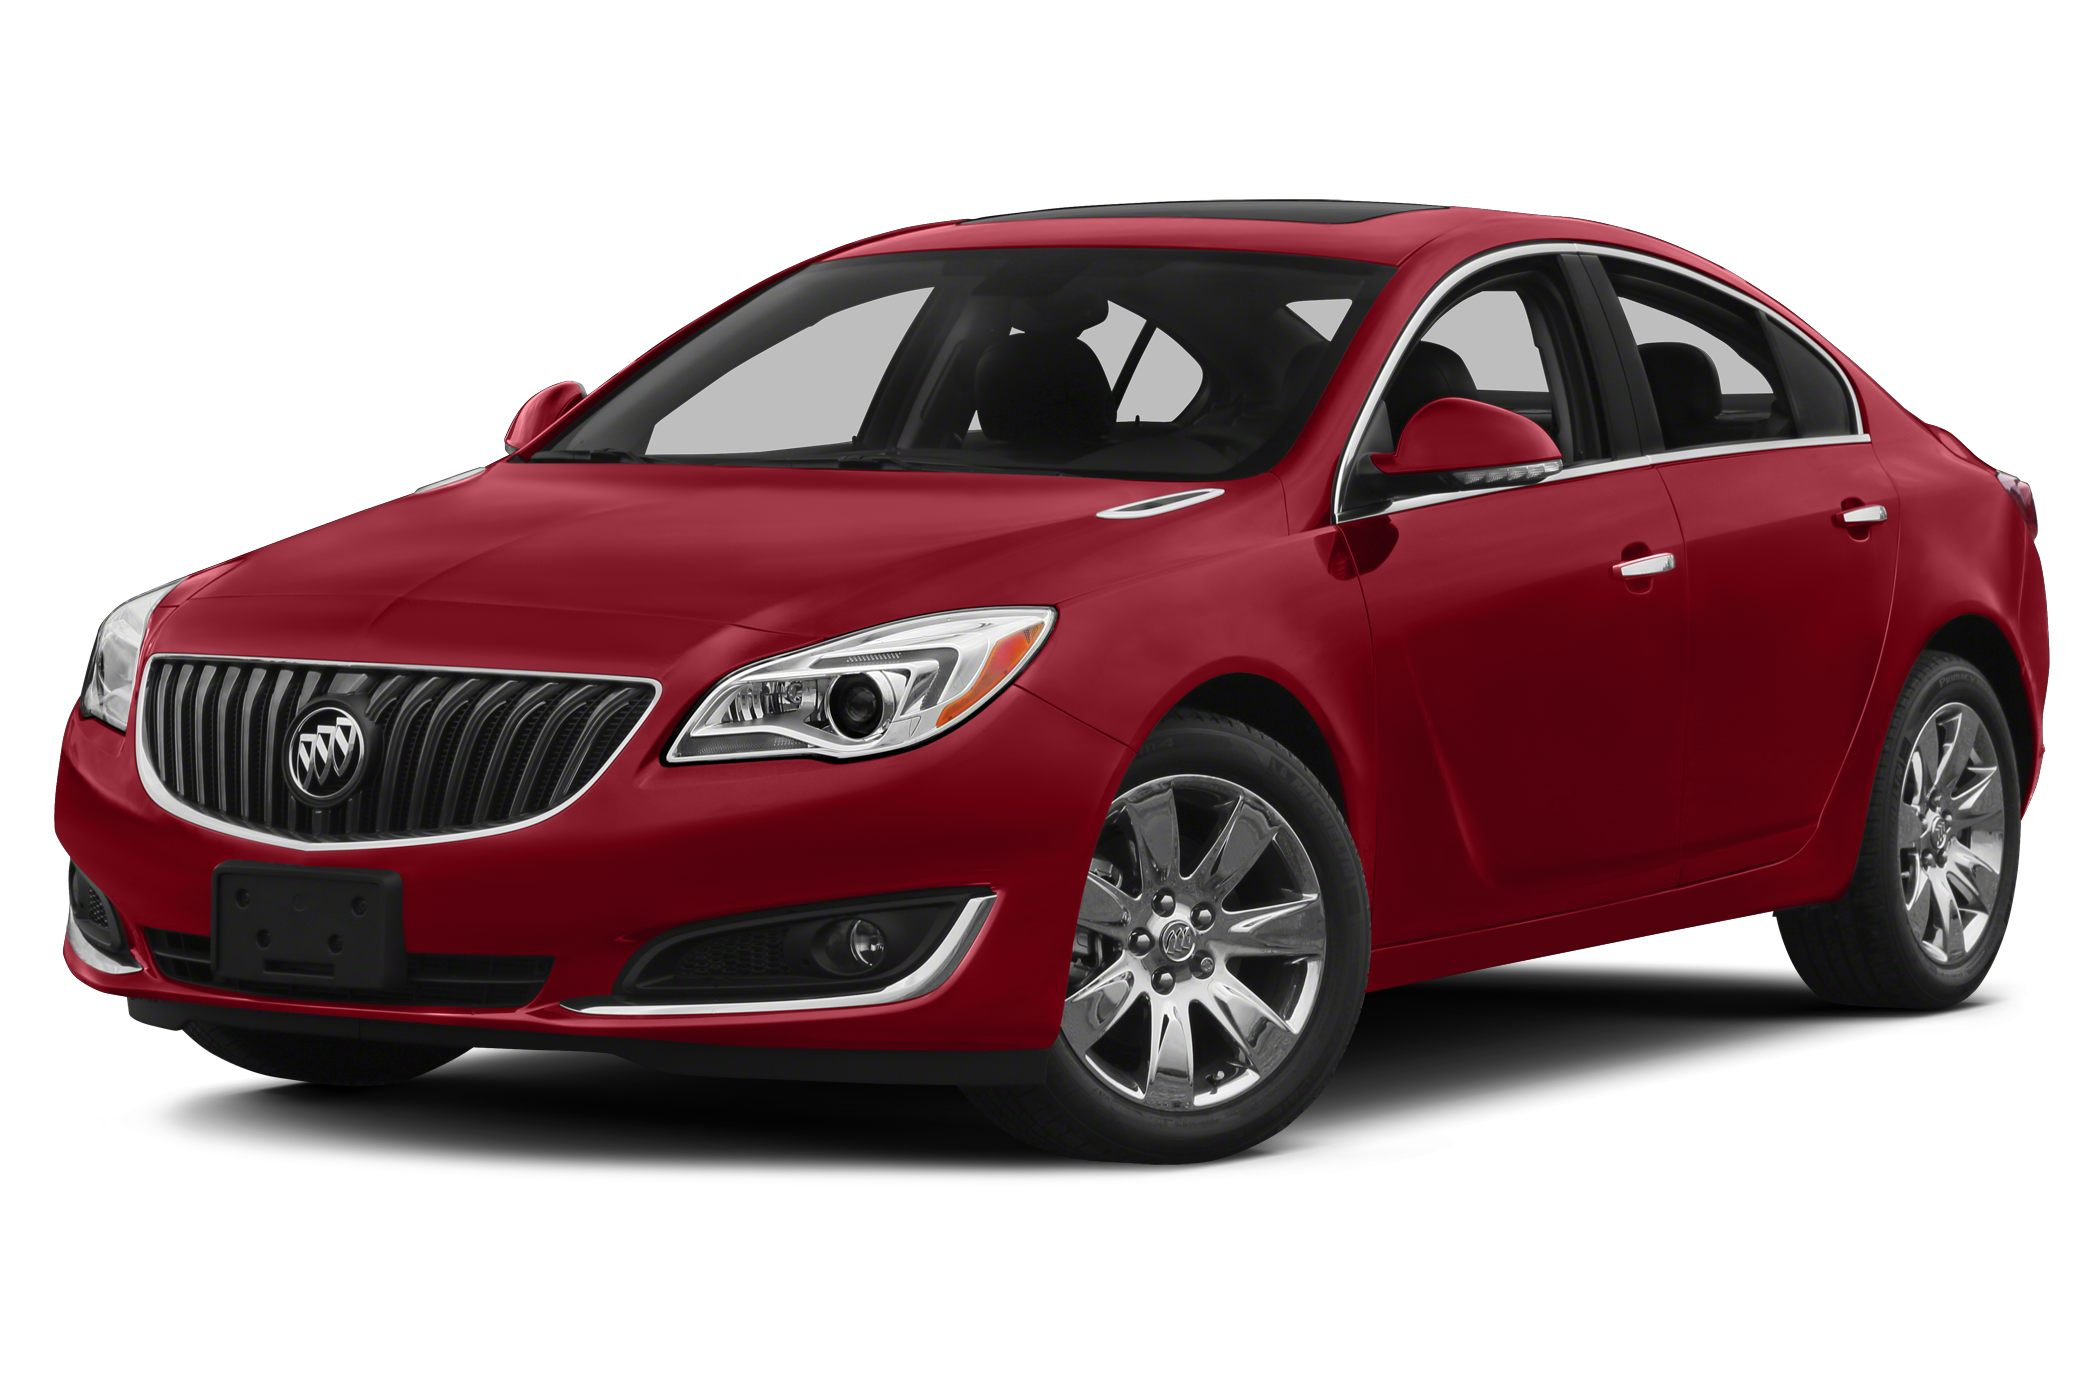 2015 Buick Regal Turbo Sedan for sale in Ankeny for $30,915 with 6 miles